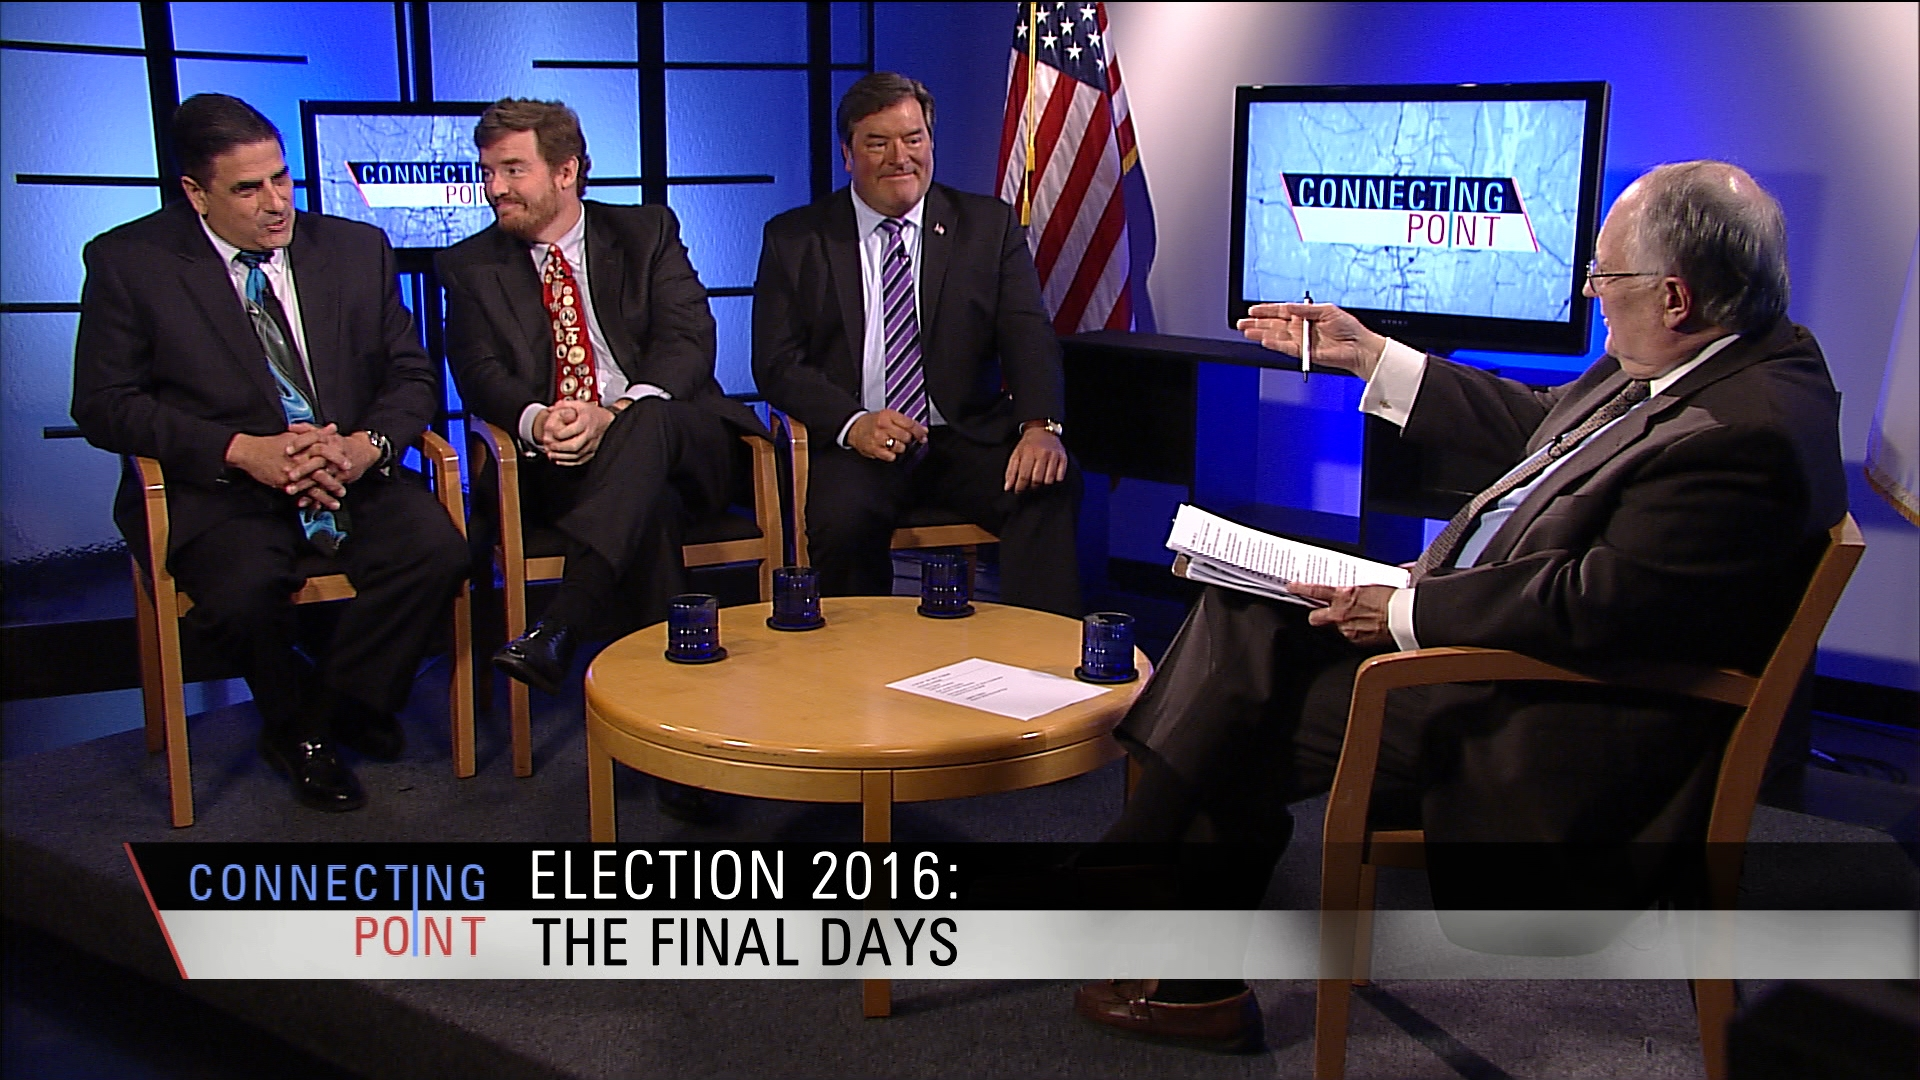 Prof. Jerold Duquette, consultant Tony Cignoli, & former campaign manager Paul Santaniello discuss Election 2016 news in Massachusetts and National races.